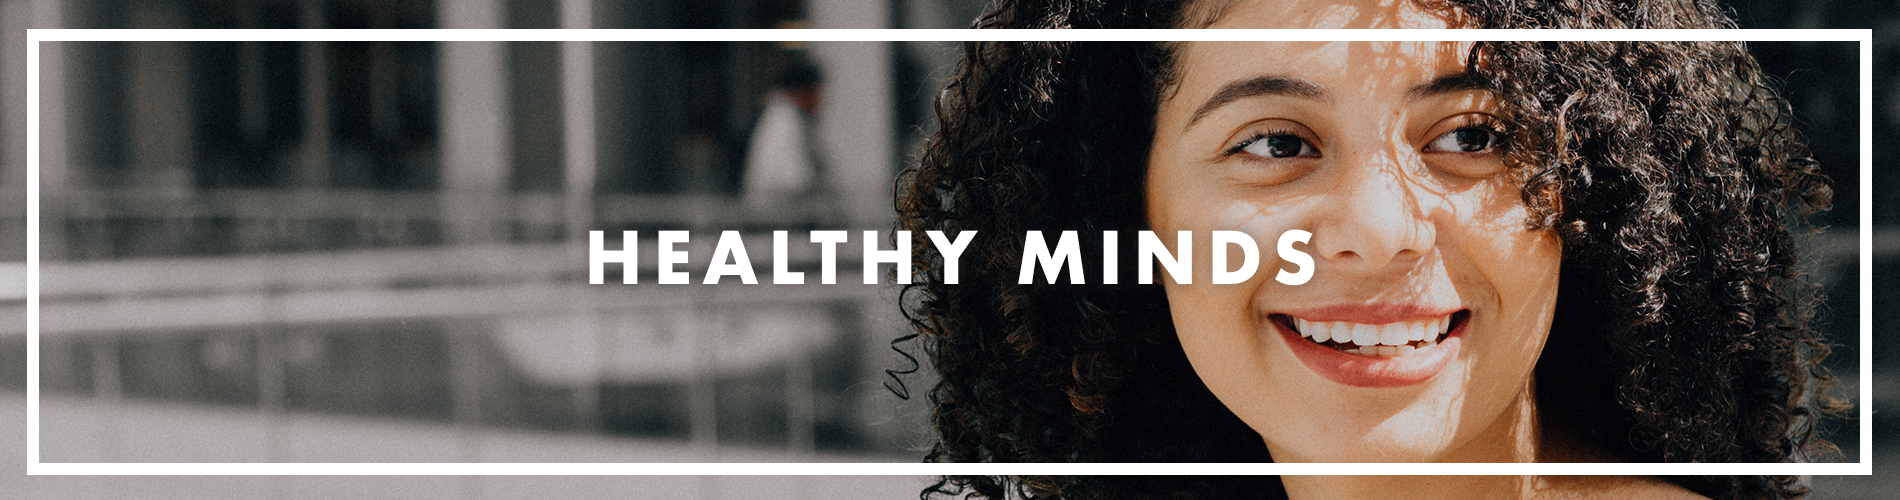 healthy minds image